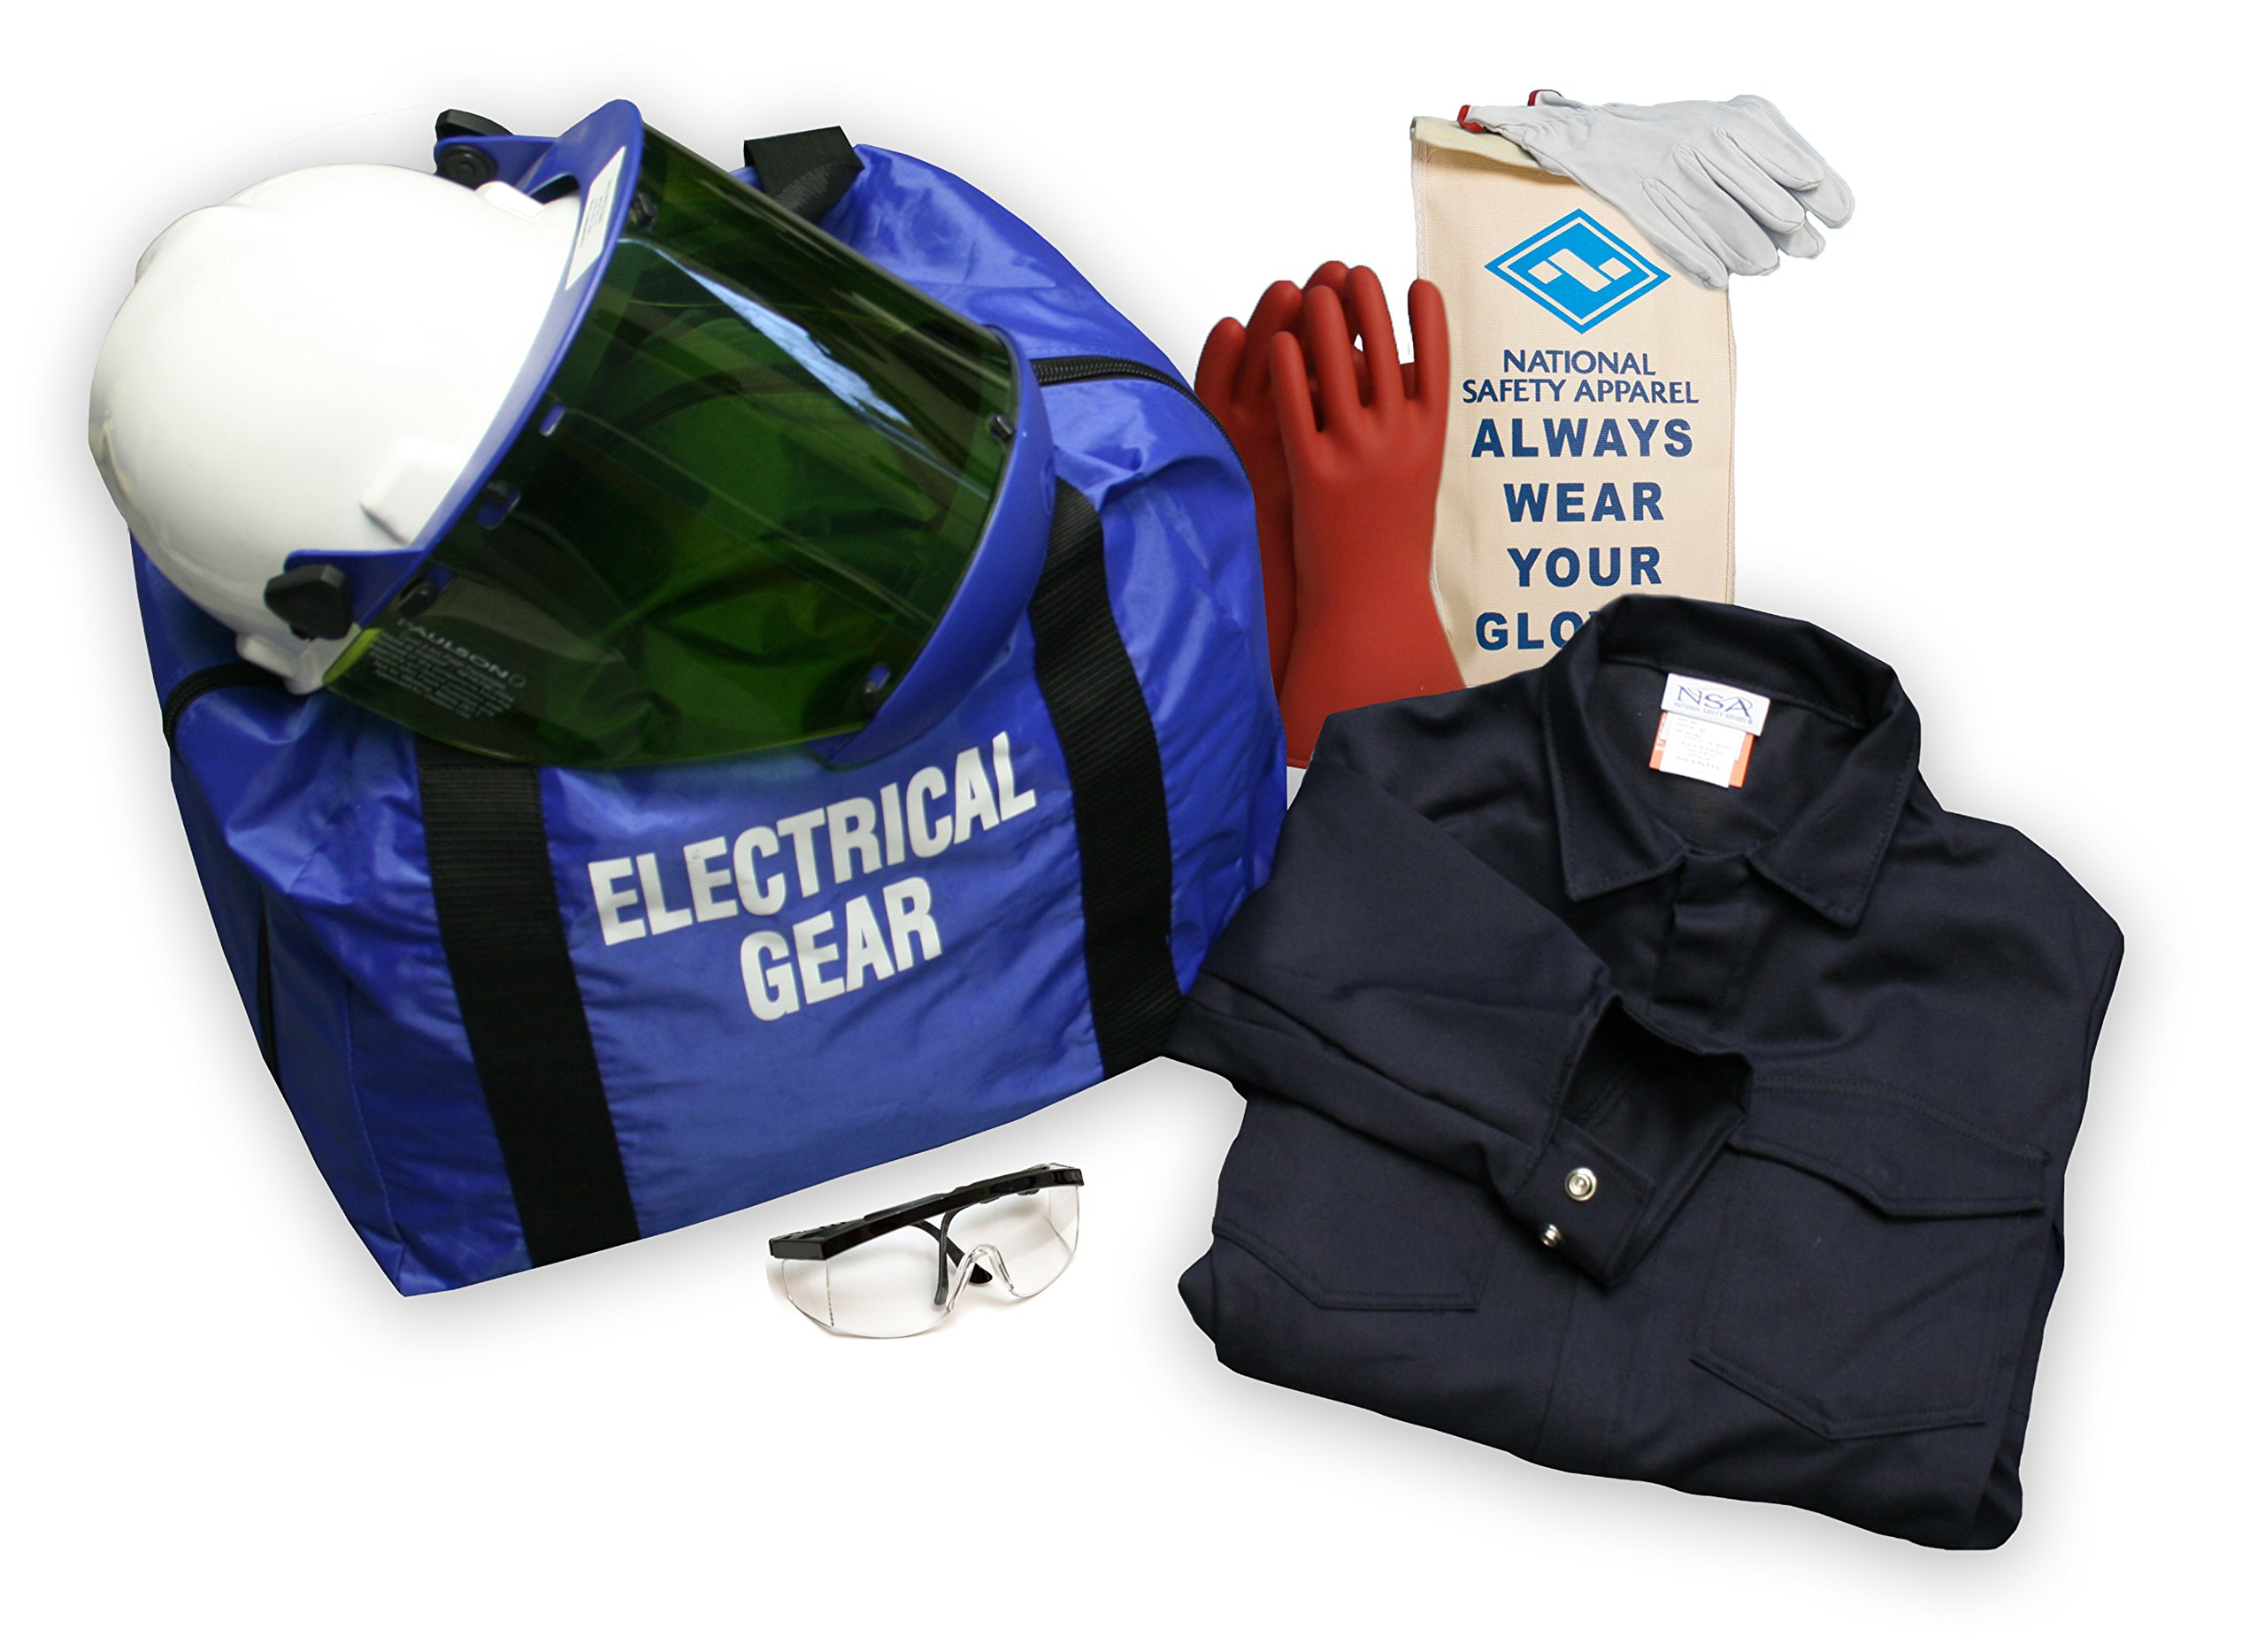 National Safety Apparel KIT2CV11LG09 ArcGuard UltraSoft Arc Flash Kit with Coverall, 12 Calorie, Large, Size 9, Navy